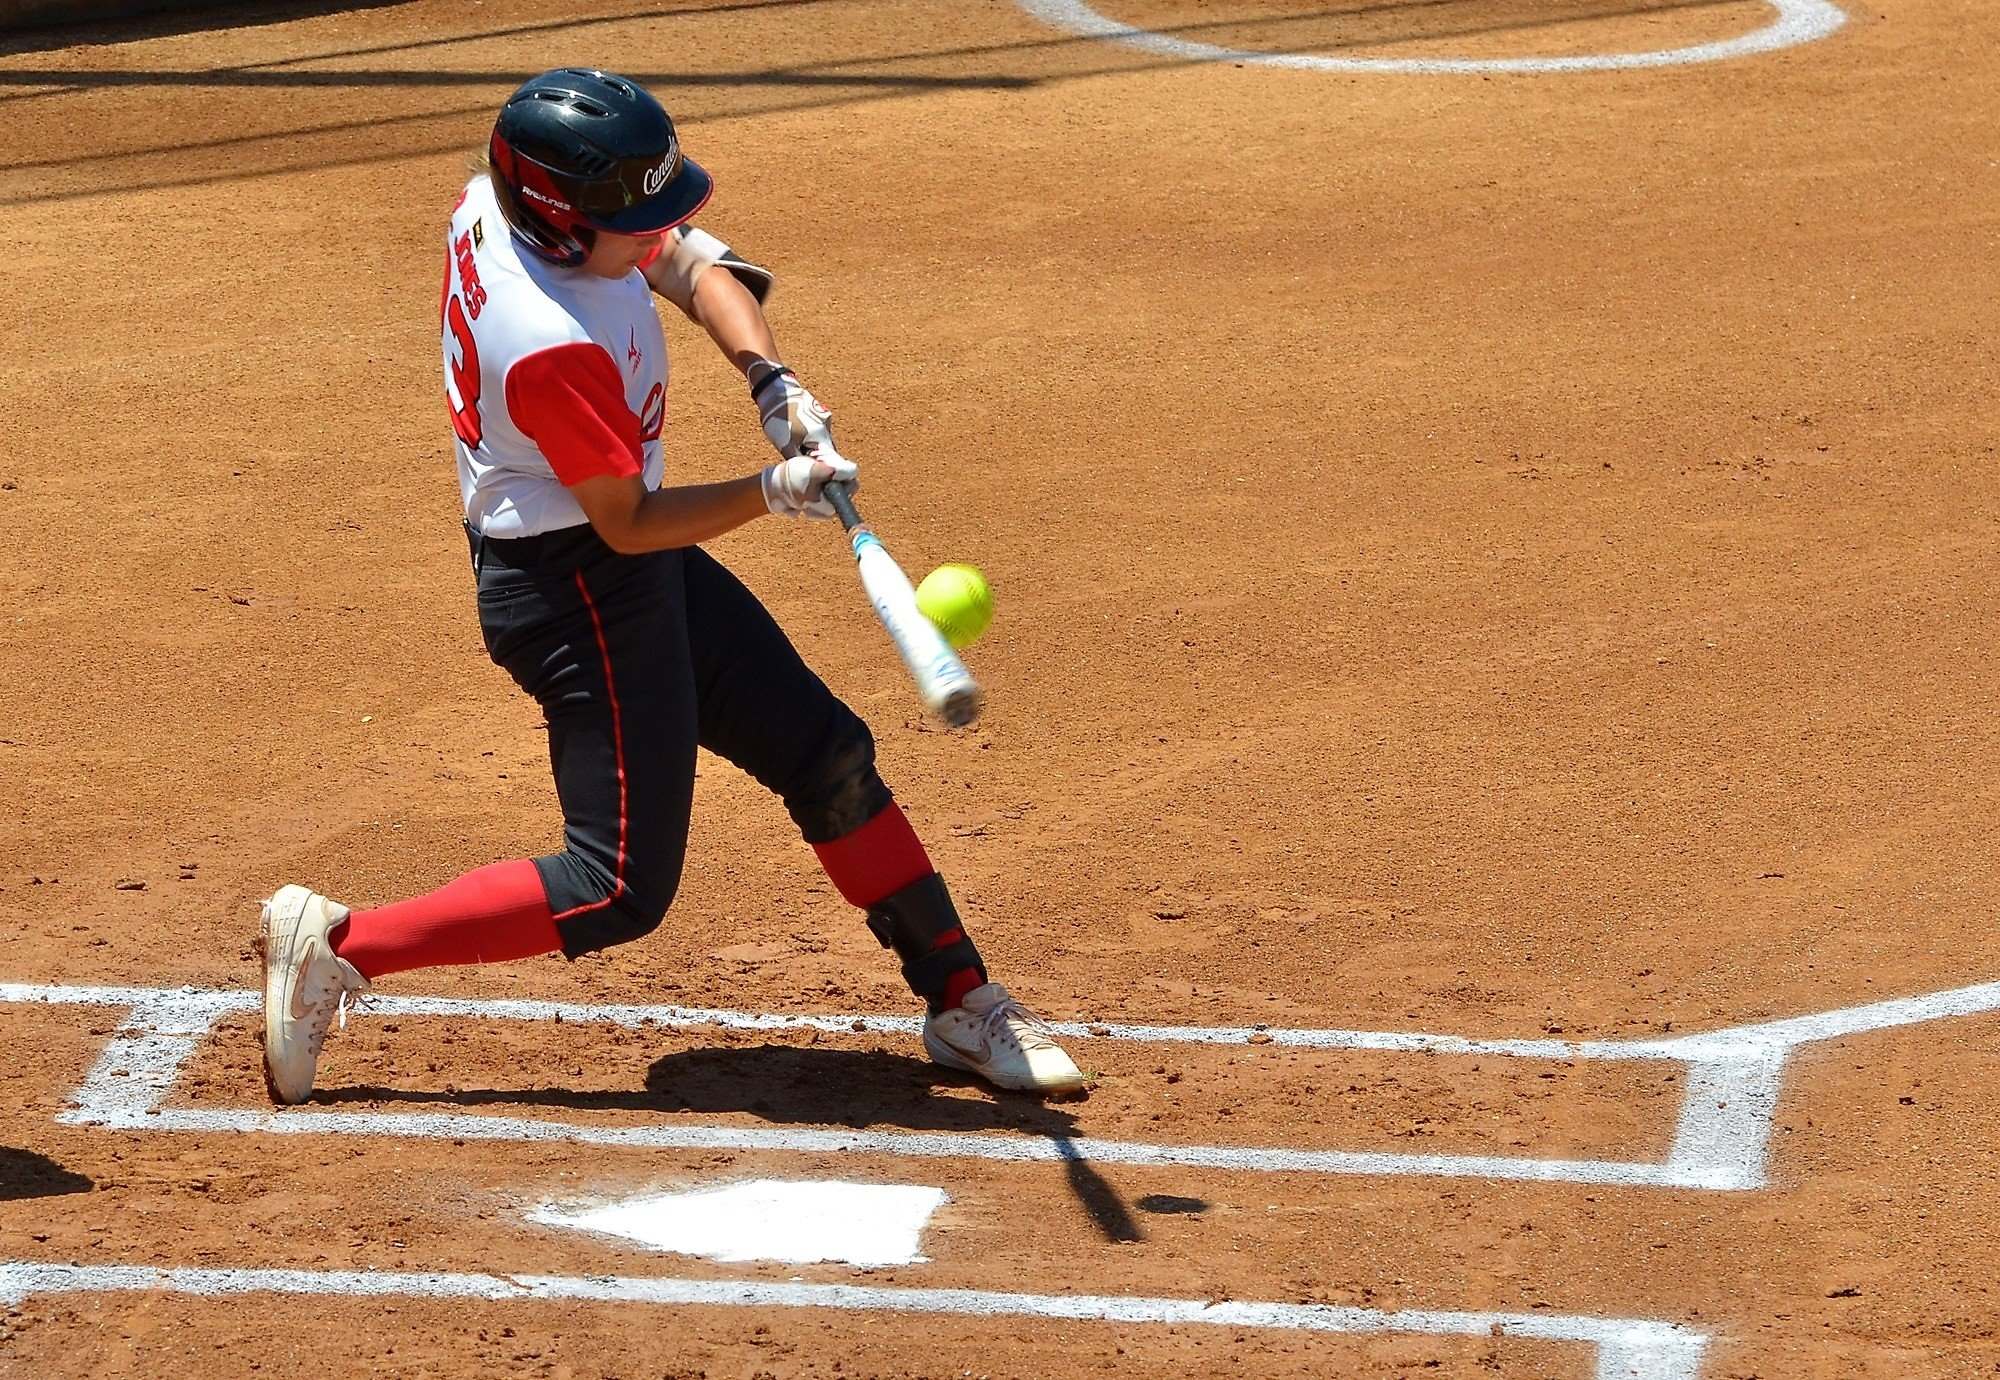 Rebecca Jones homered to put Canada ahead in the first